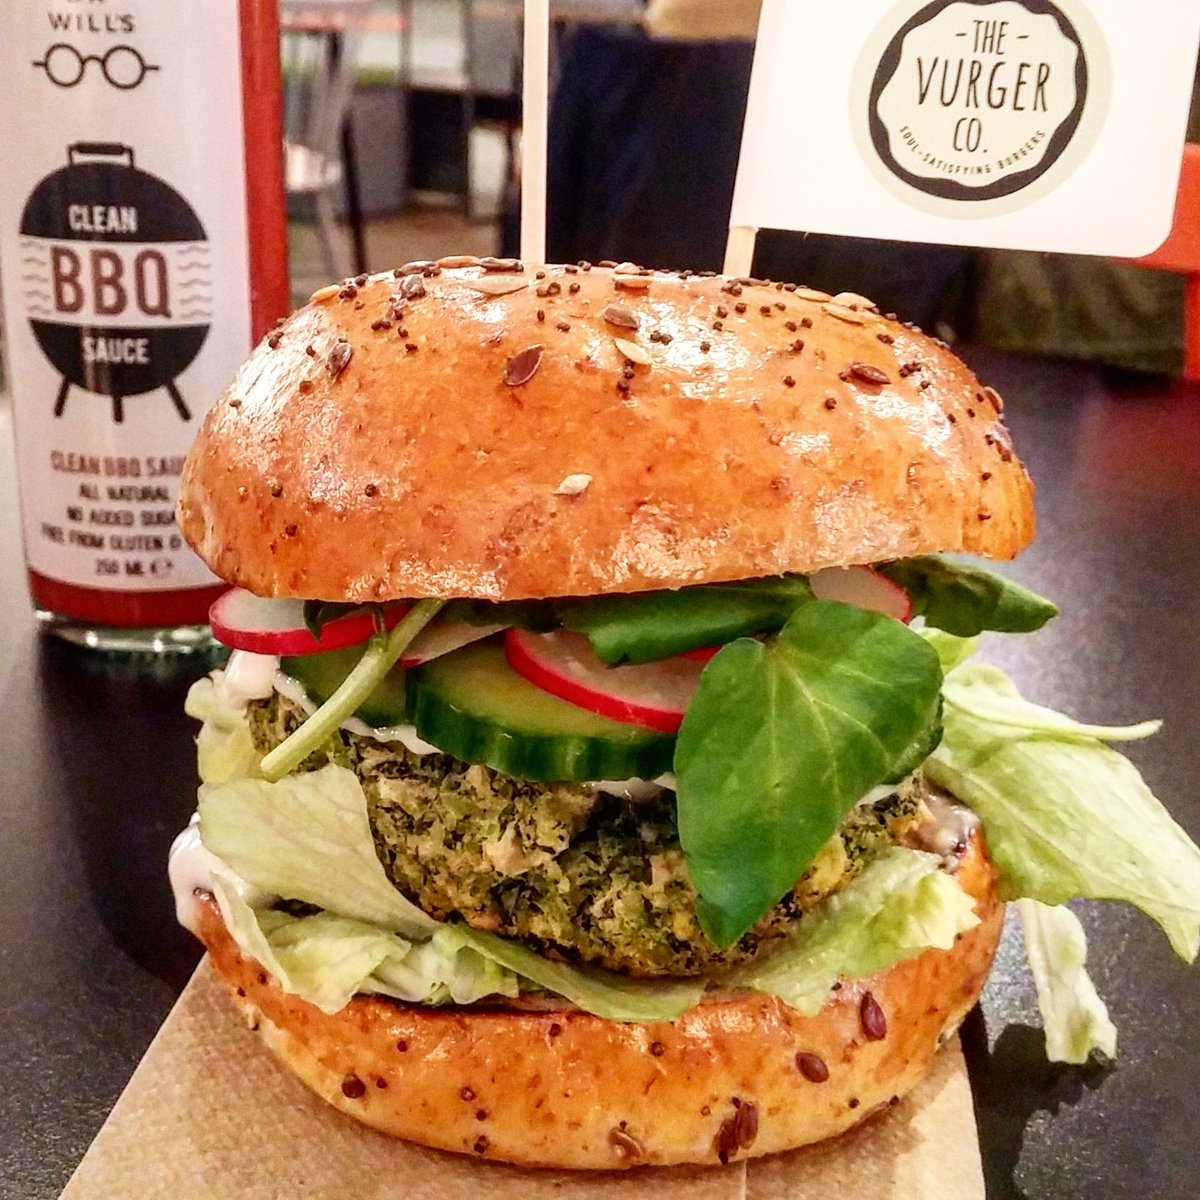 Popping up tonight and for the next 2 Saturdays - @TheVurgerCo &#39;s fine #vegan #burgers at @pillboxkitchen in #E2 <br>http://pic.twitter.com/2Lw221b1da &ndash; à The Pillbox Kitchen